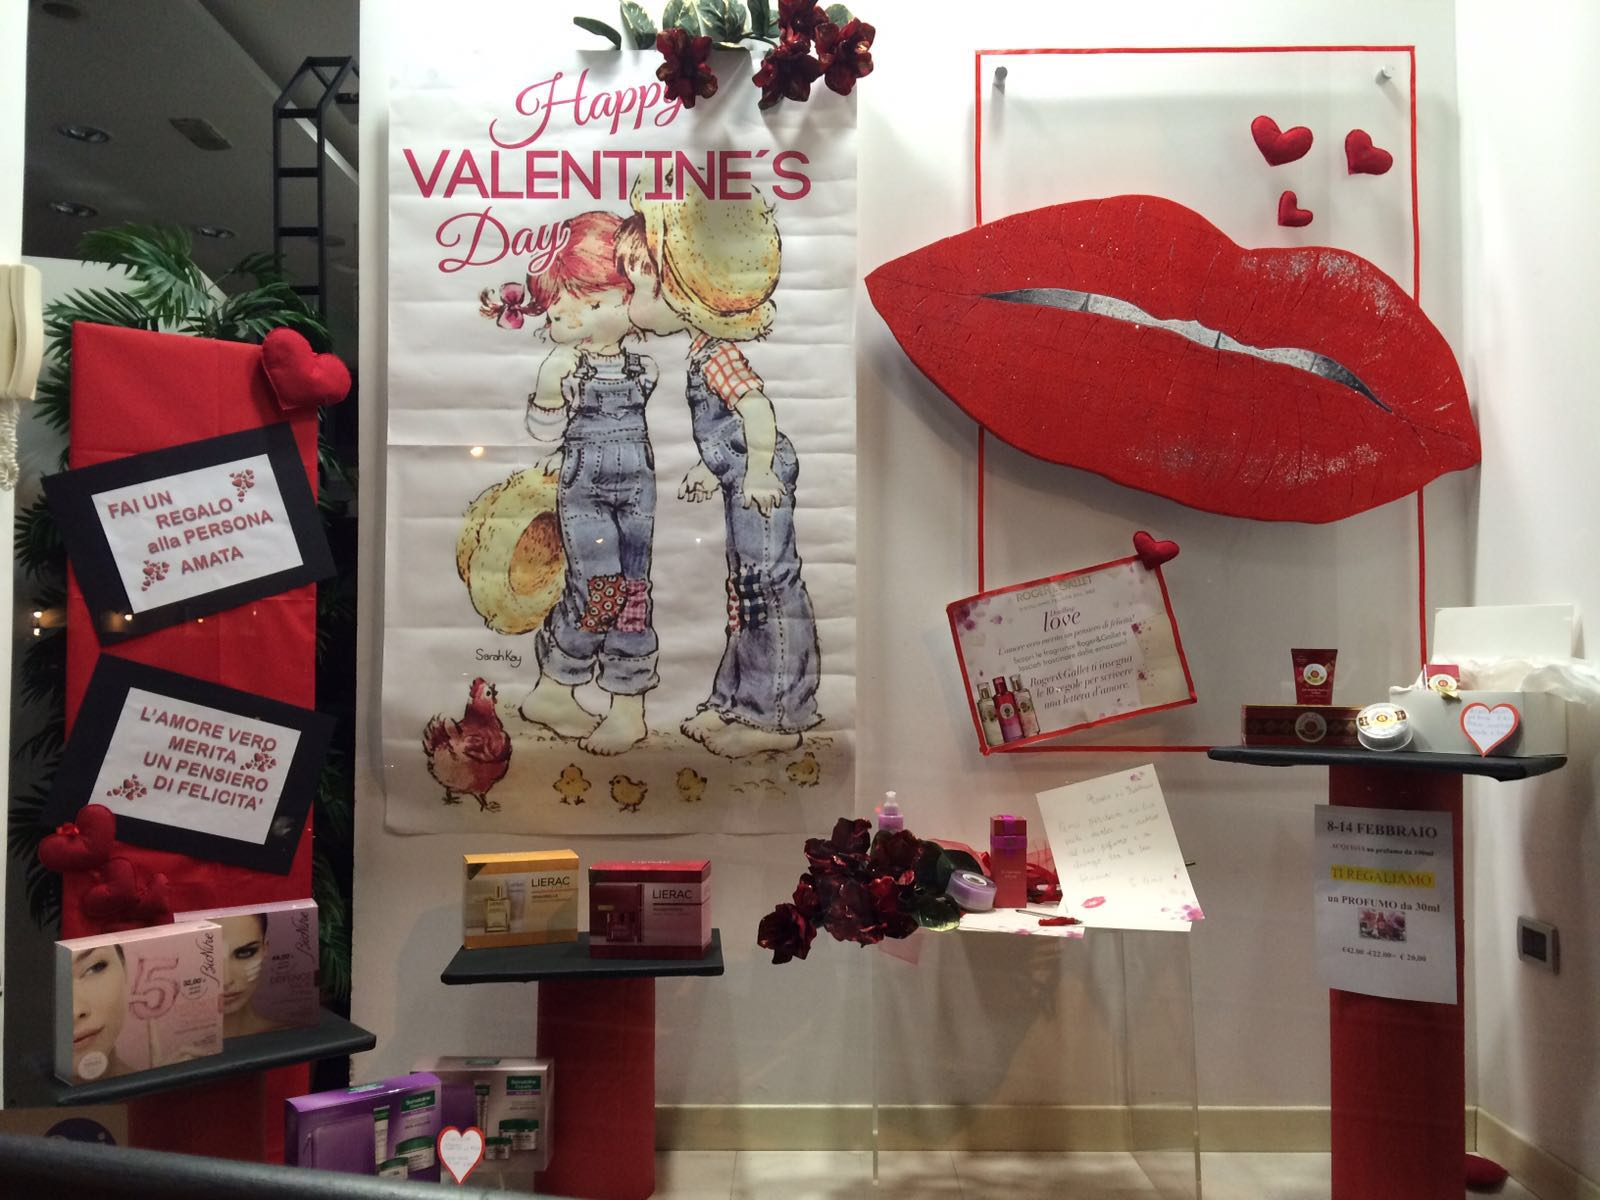 Red details in this pharmacy window display and a frame with some big lips on the background, designed for Valentine's day.